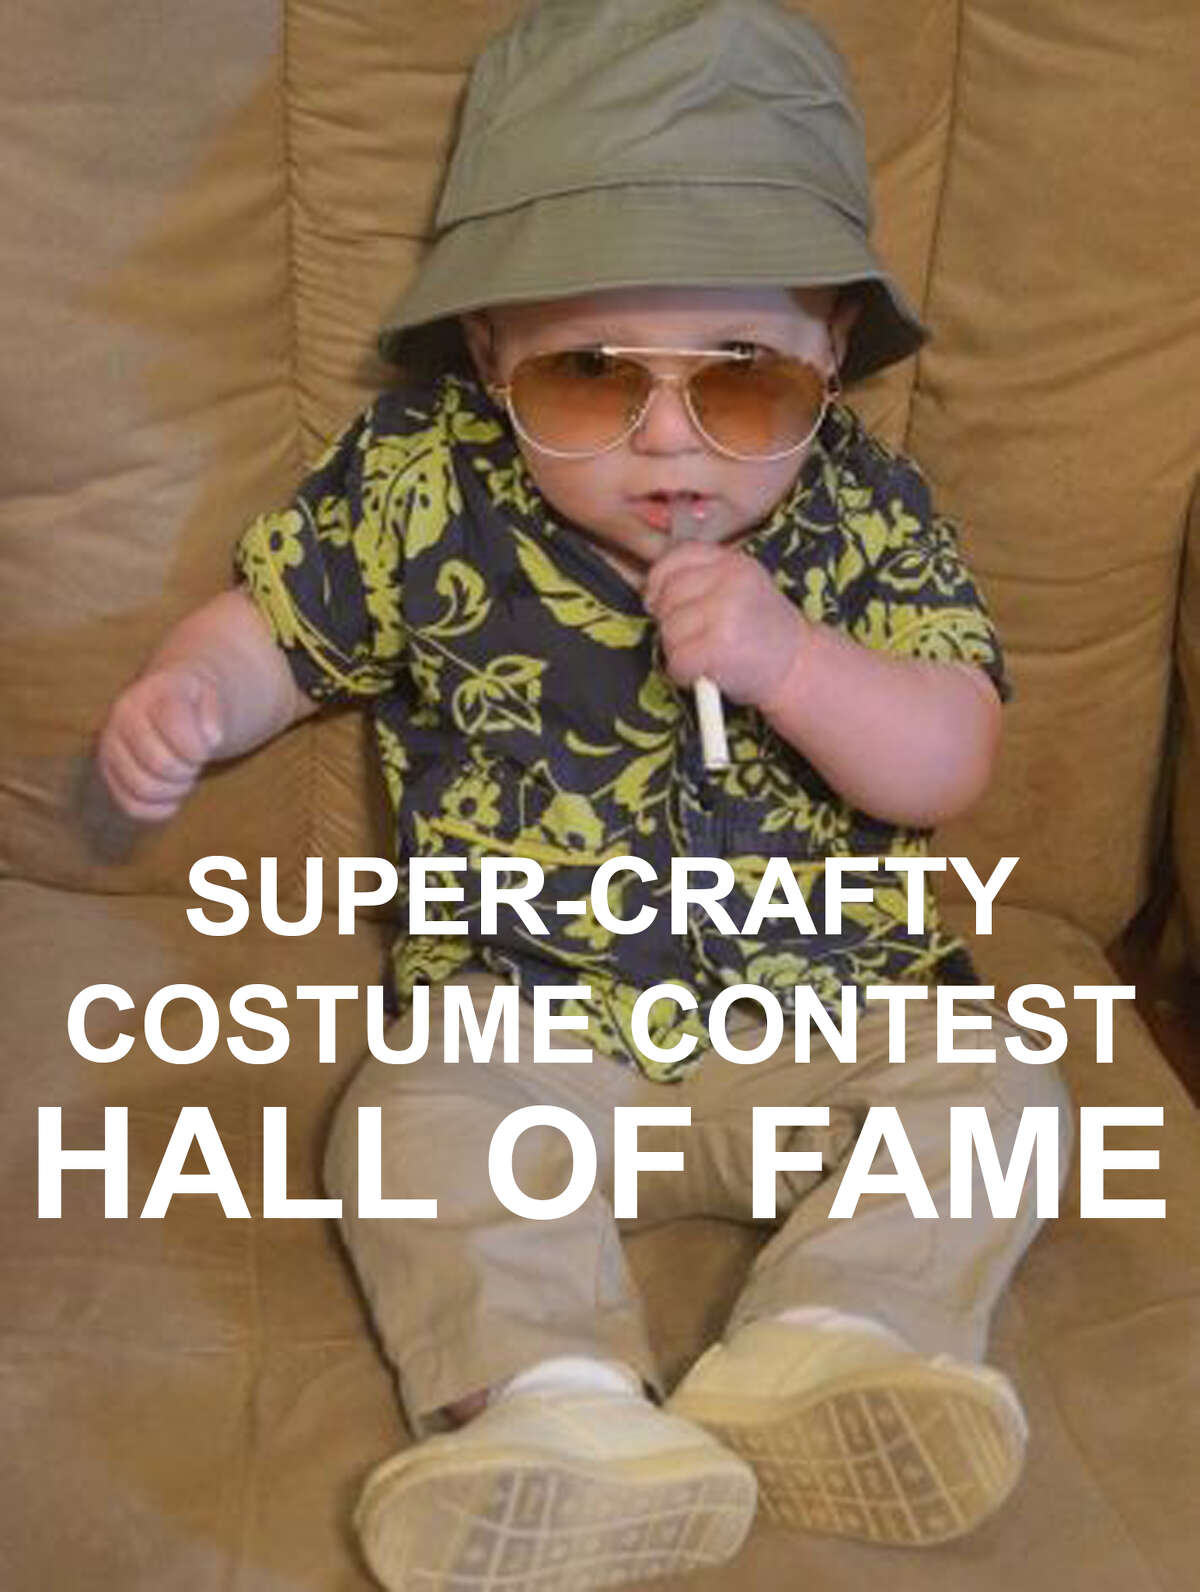 Which crafty costumes are the craftiest of all time? Click through to see some of the past winners of Peter Hartlaub's Super-Crafty Costume Contest on SFGATE.